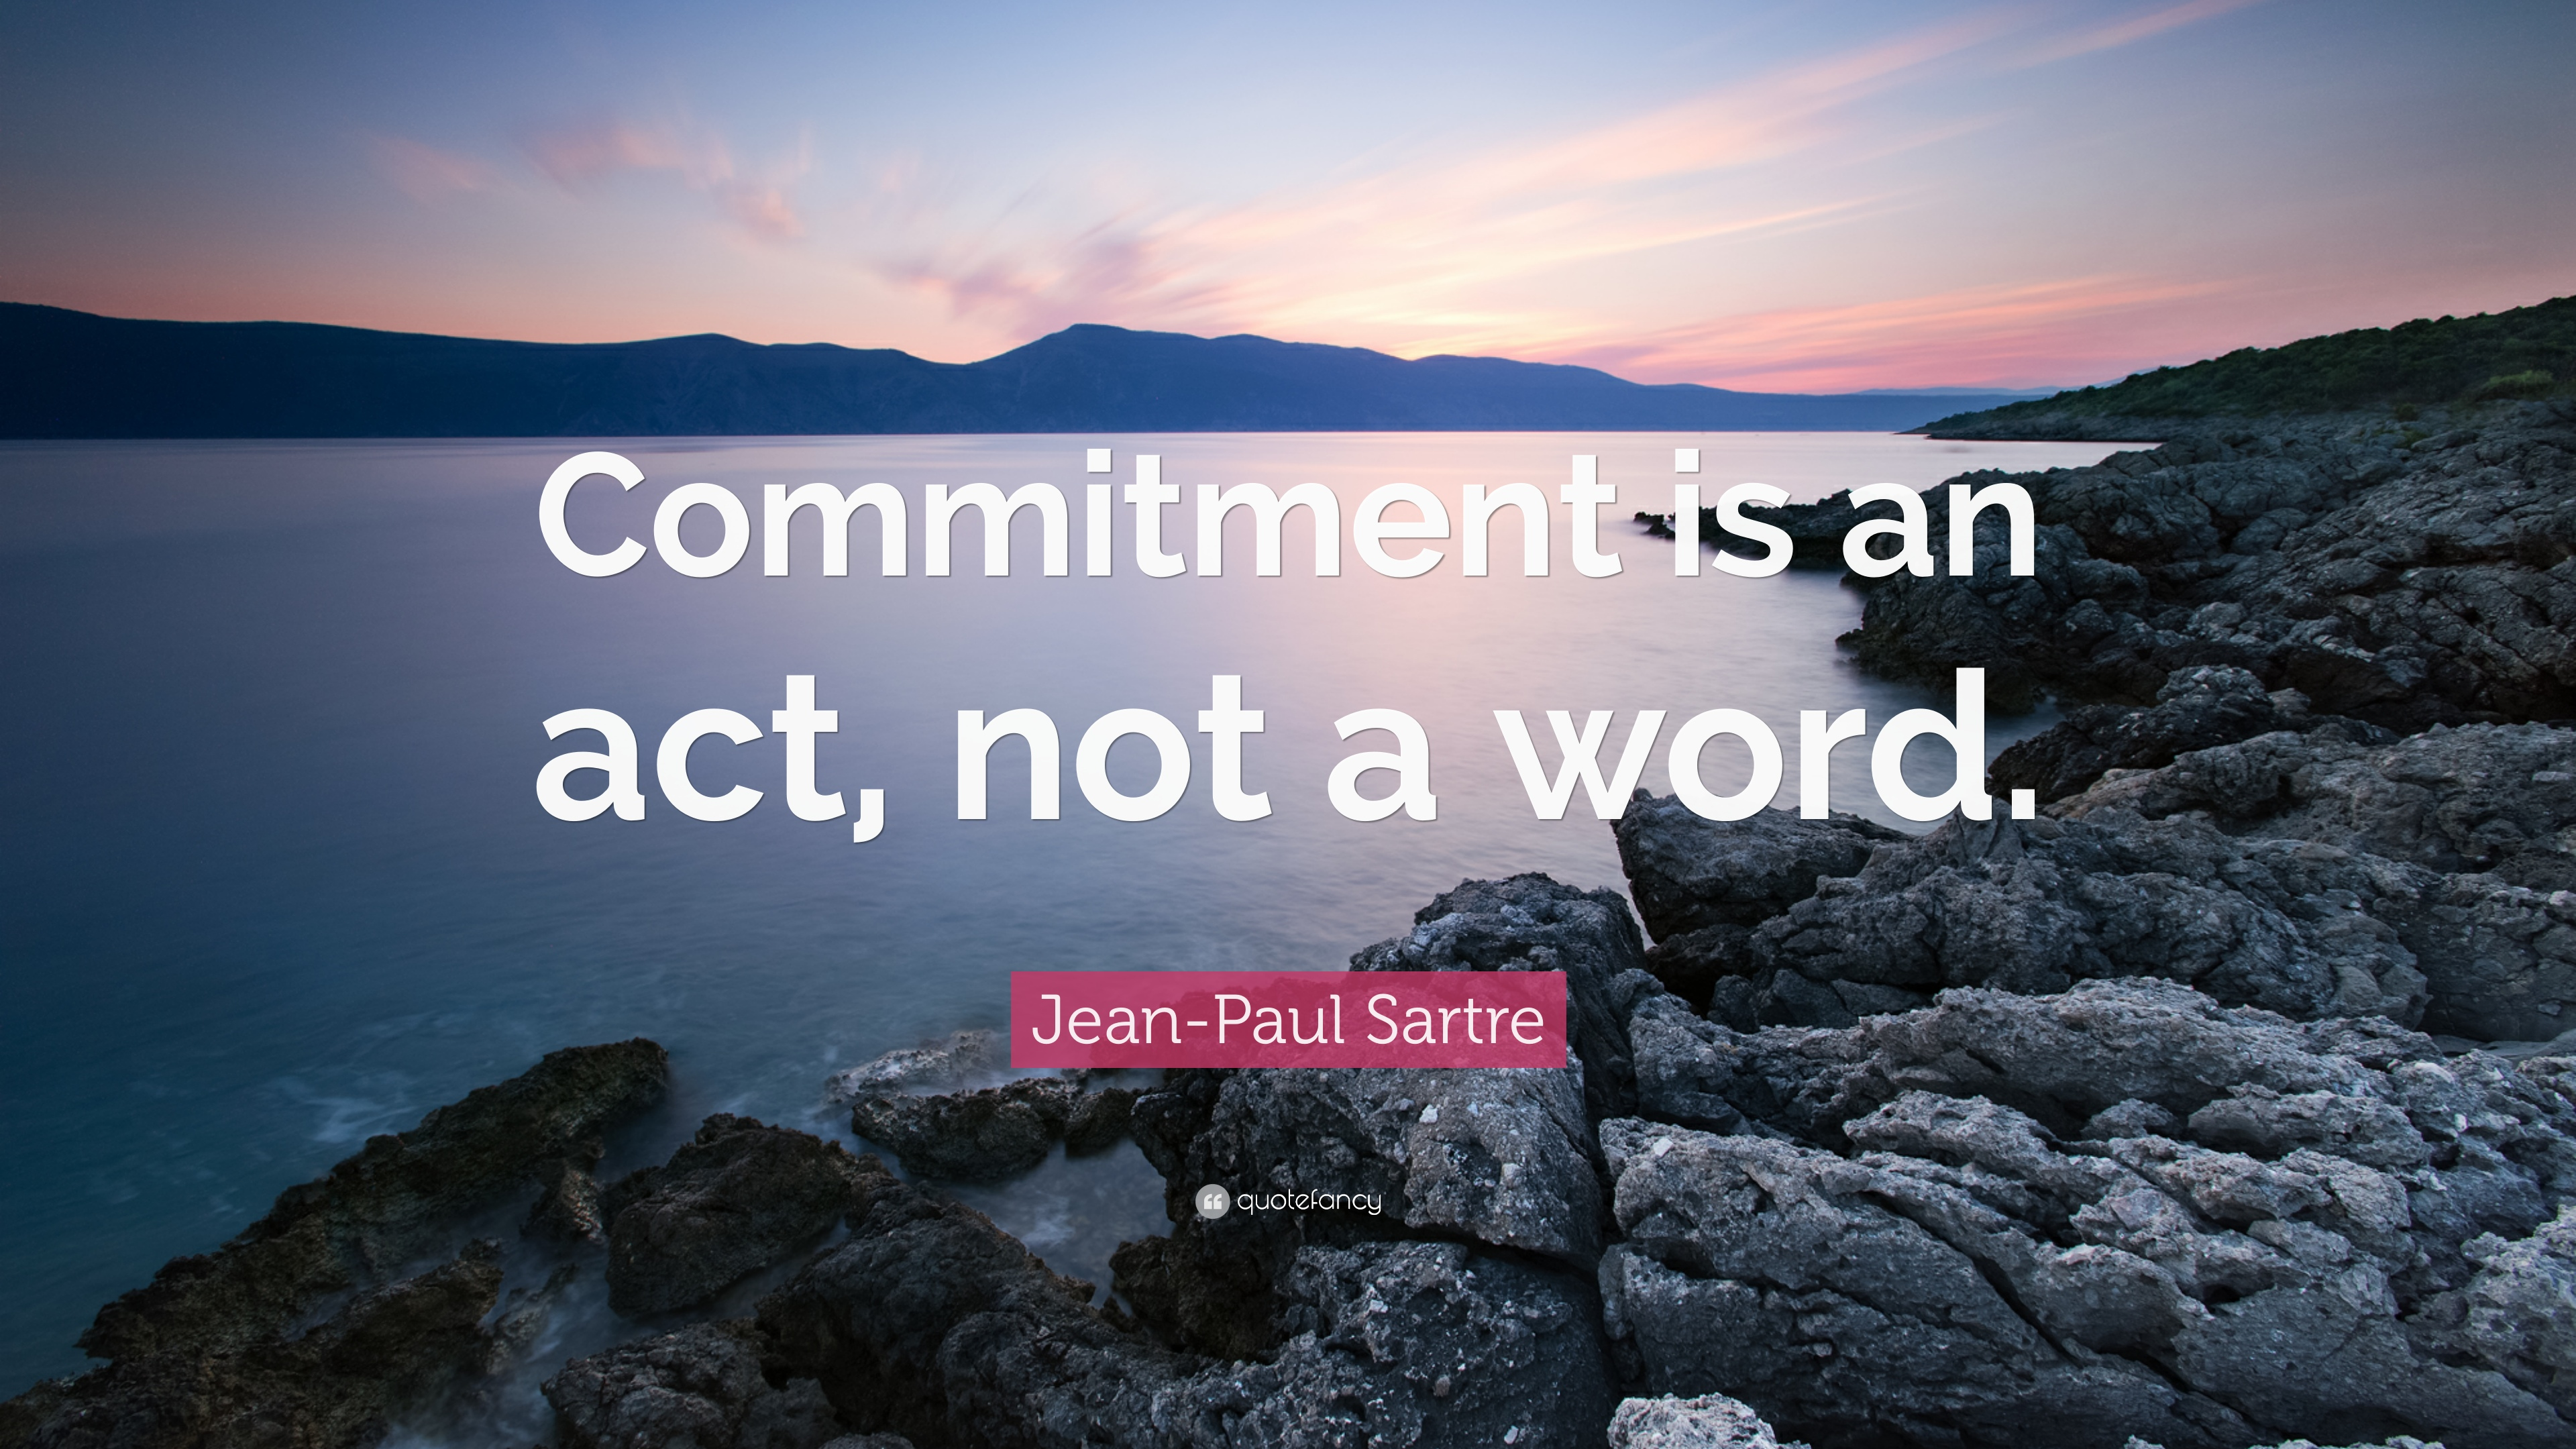 Commitment Quotes (40 wallpapers) - Quotefancy